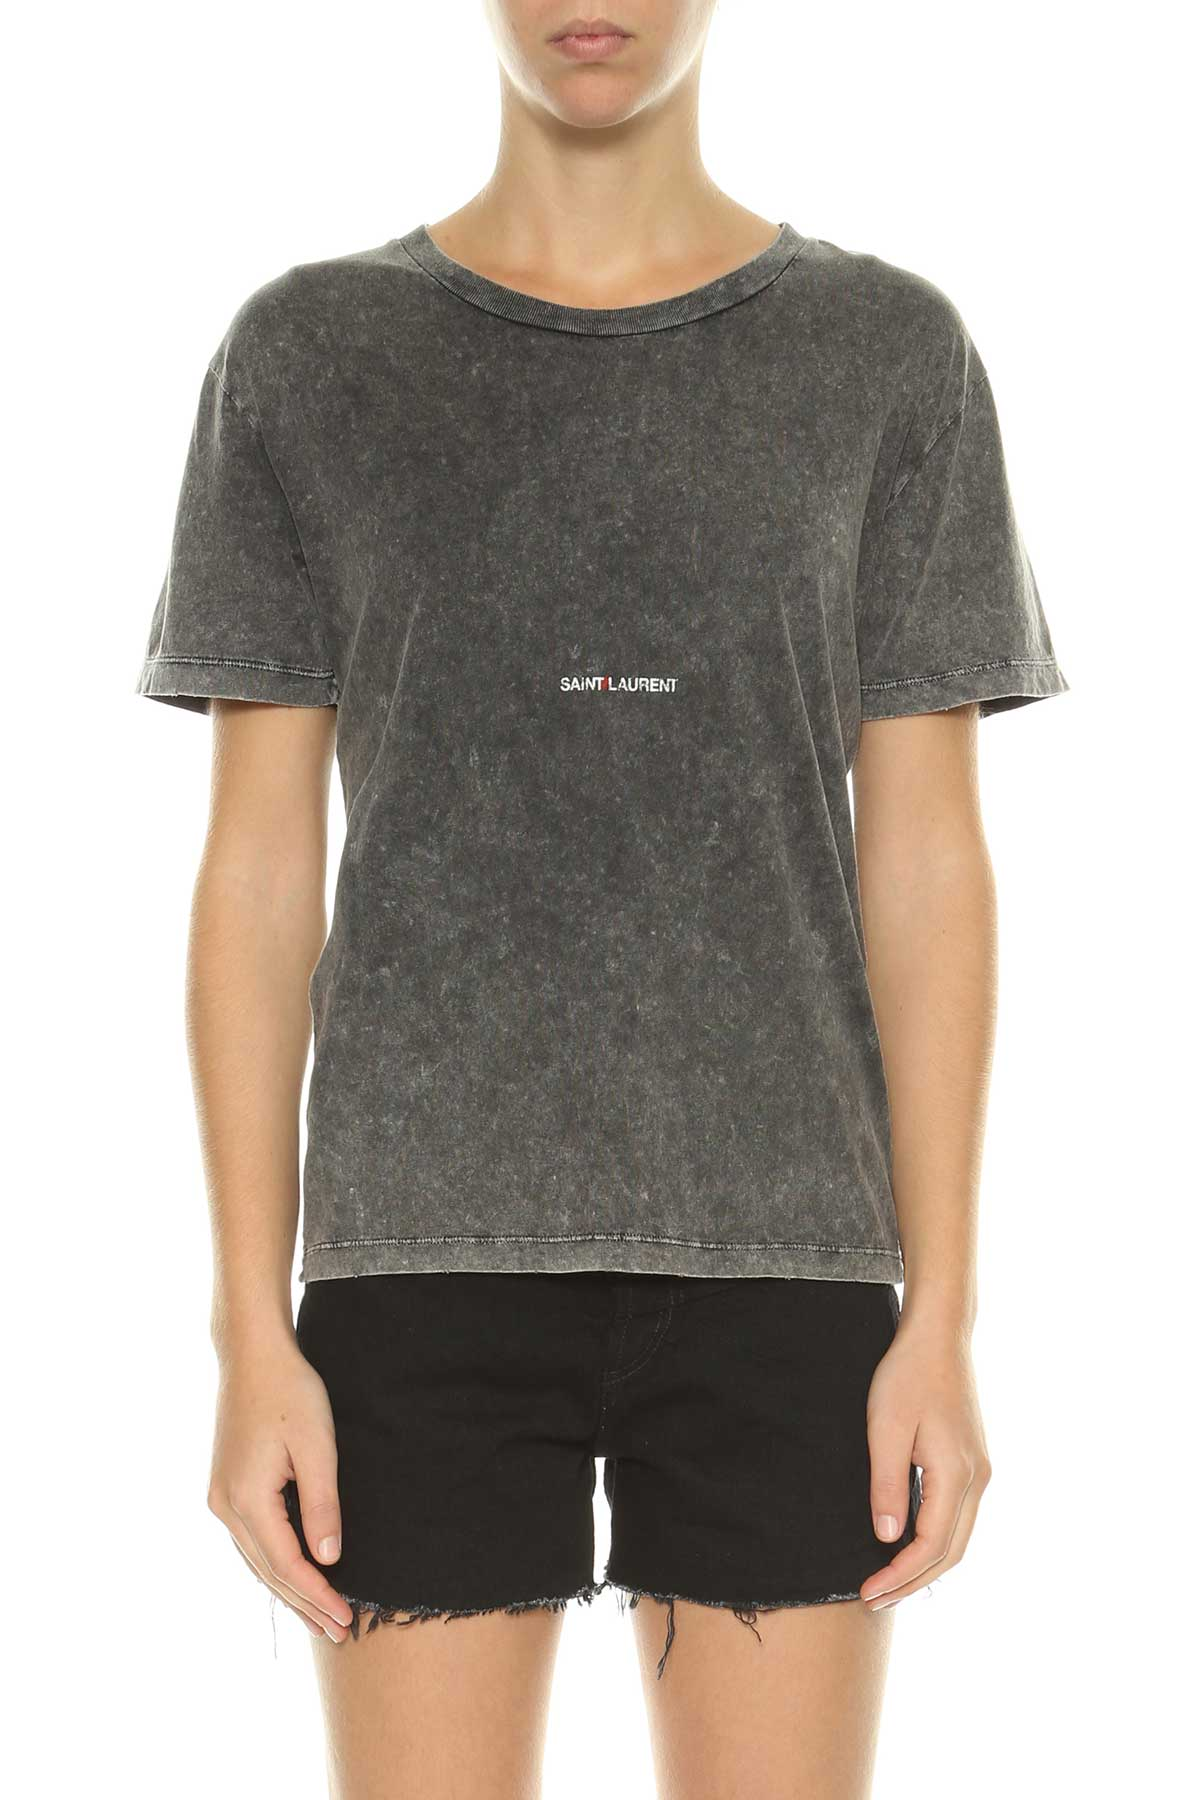 Saint Laurent Saint Laurent Logo Printed T-shirt